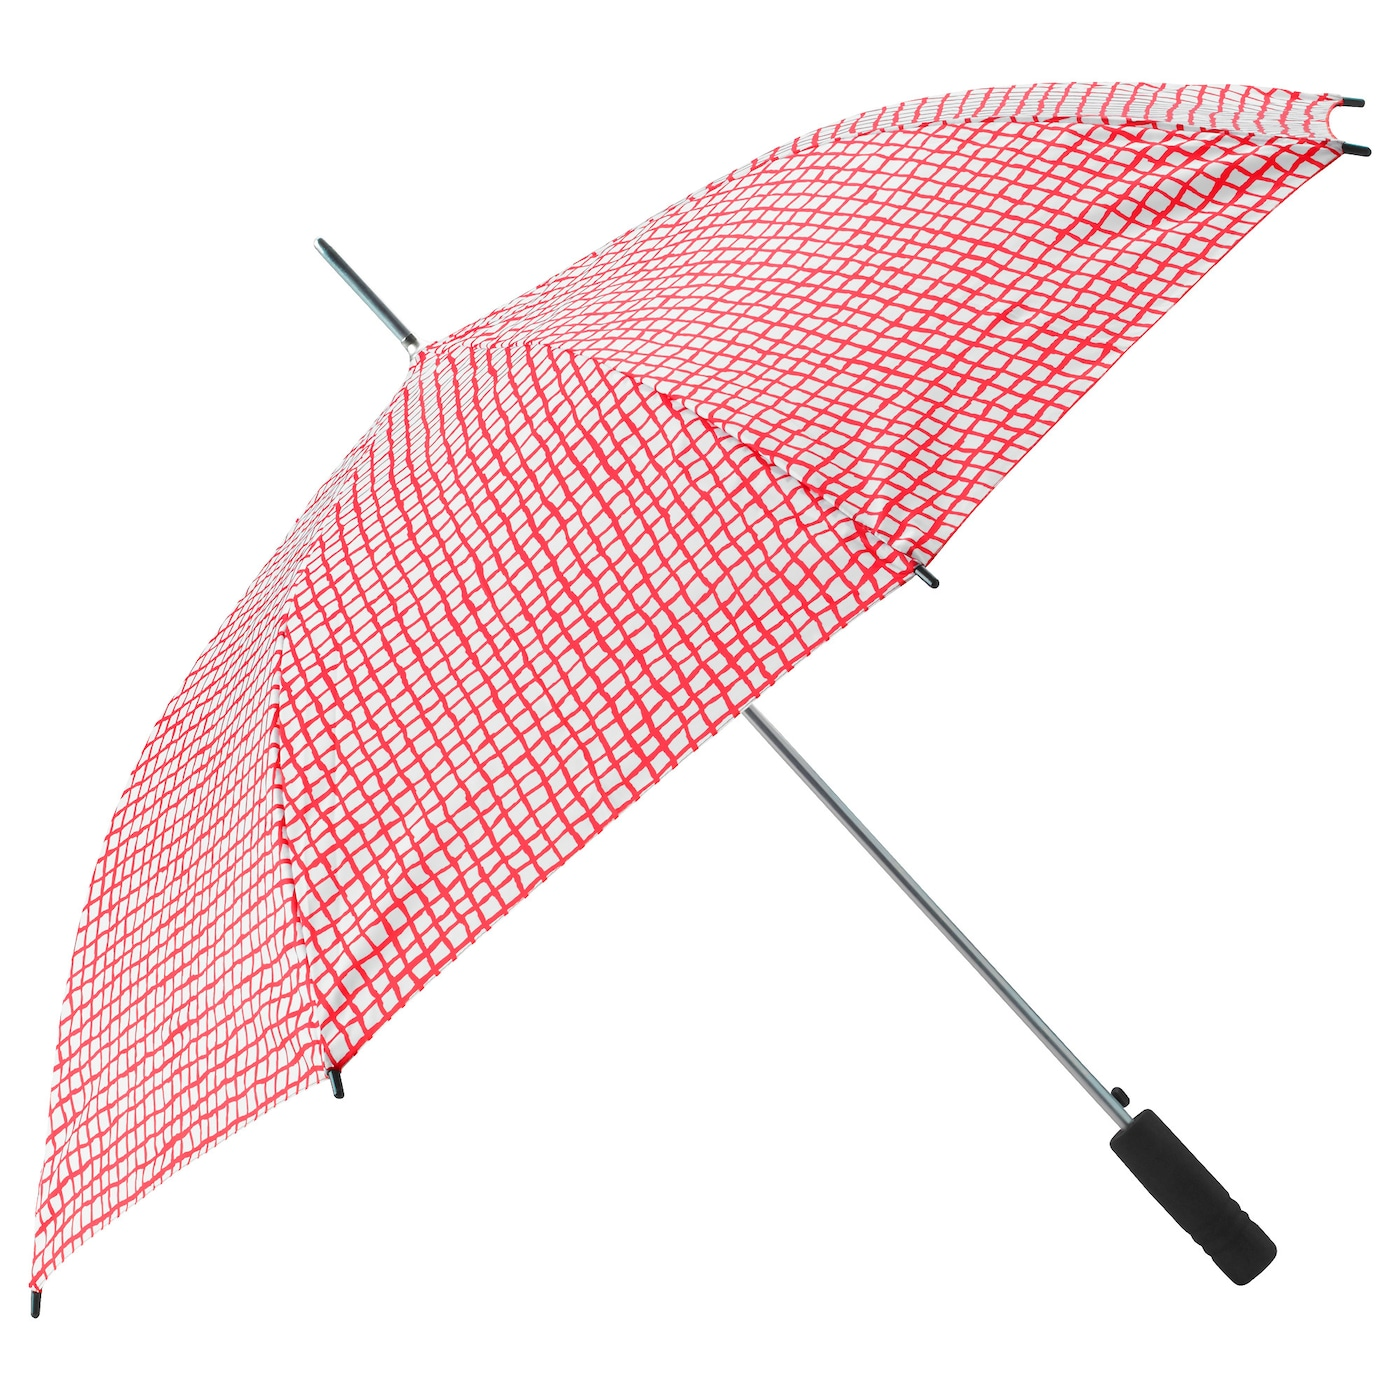 IKEA KNALLA umbrella